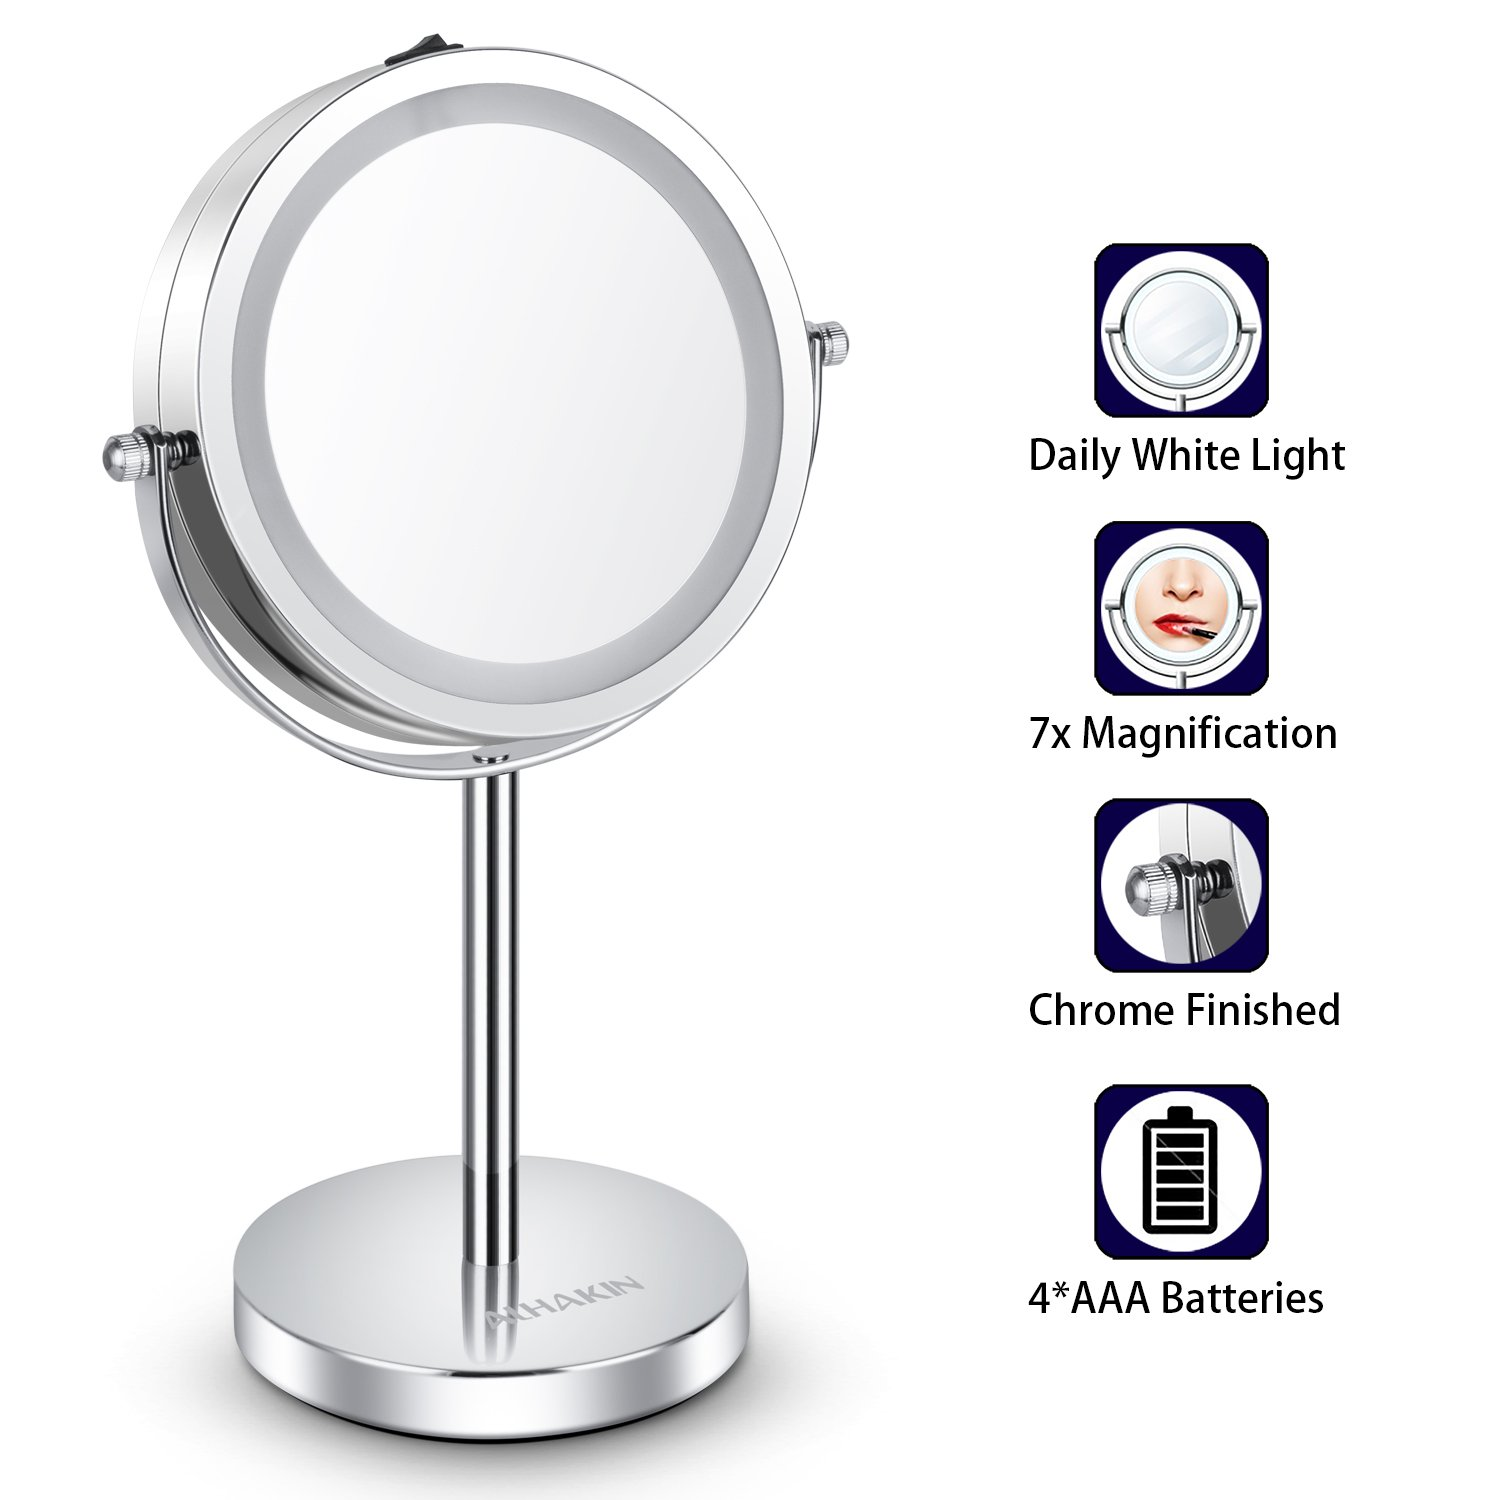 Lighted Makeup Mirror - 6'' LED Vanity Mirror 7x Magnification Double Sided Mirror Cosmetic Table Mirror Polished Chrome ALHAKIN